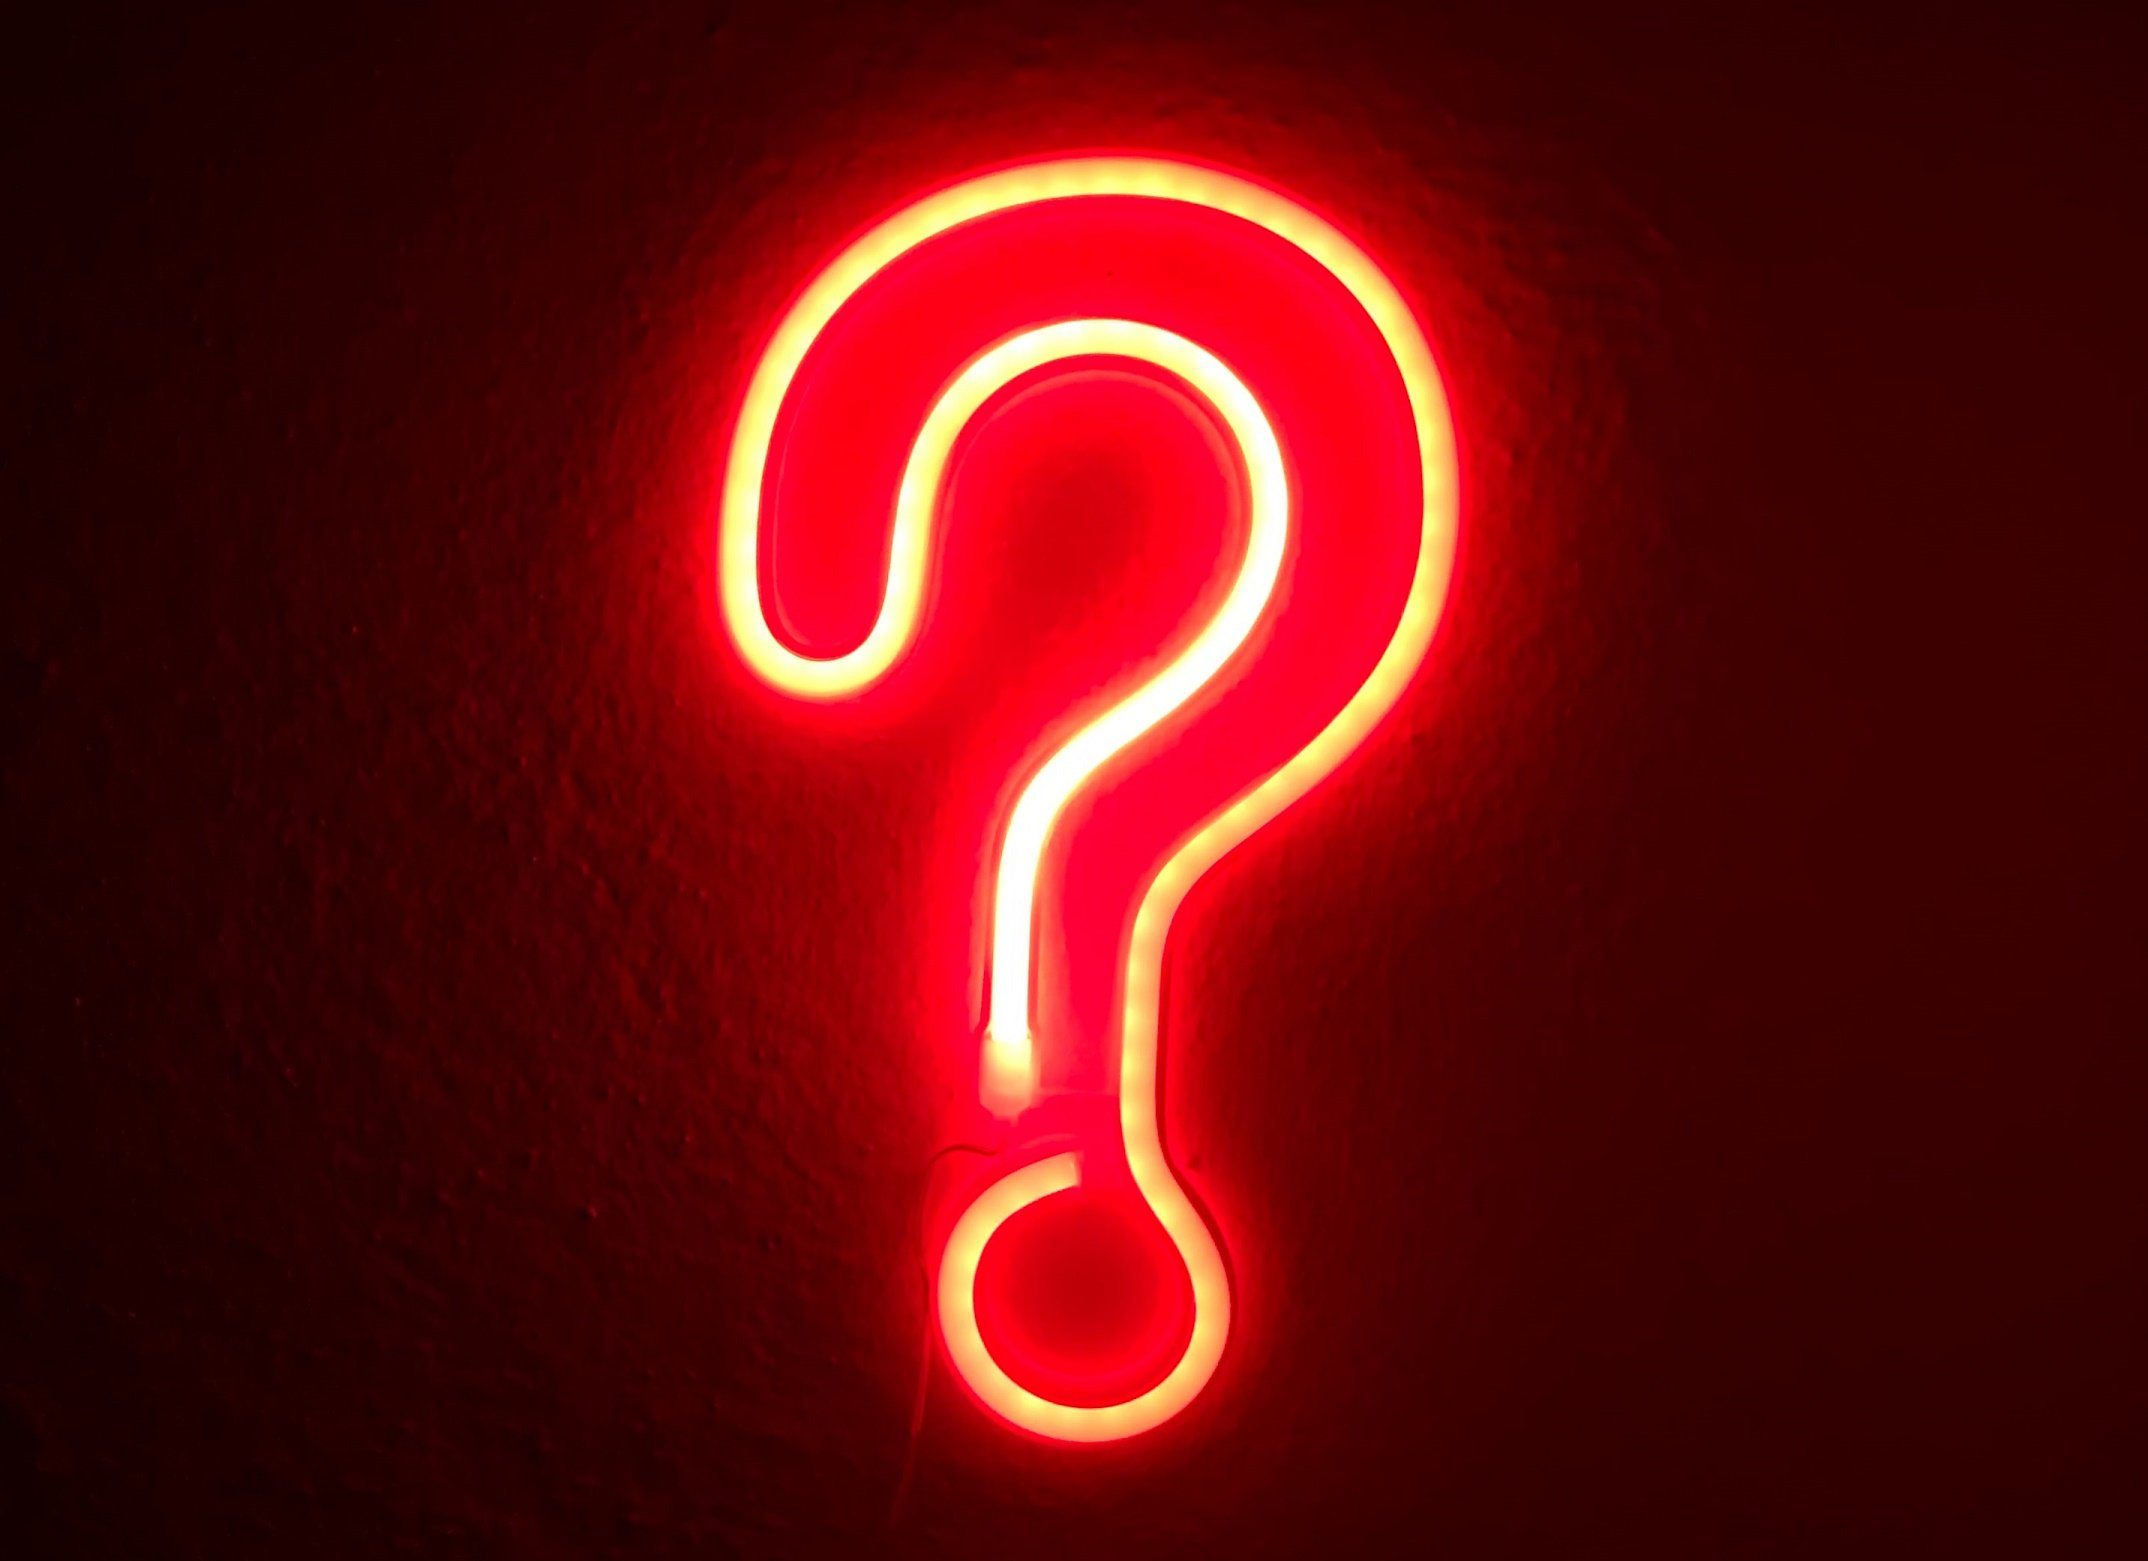 A question mark neon sign in red, glowing against a dak background